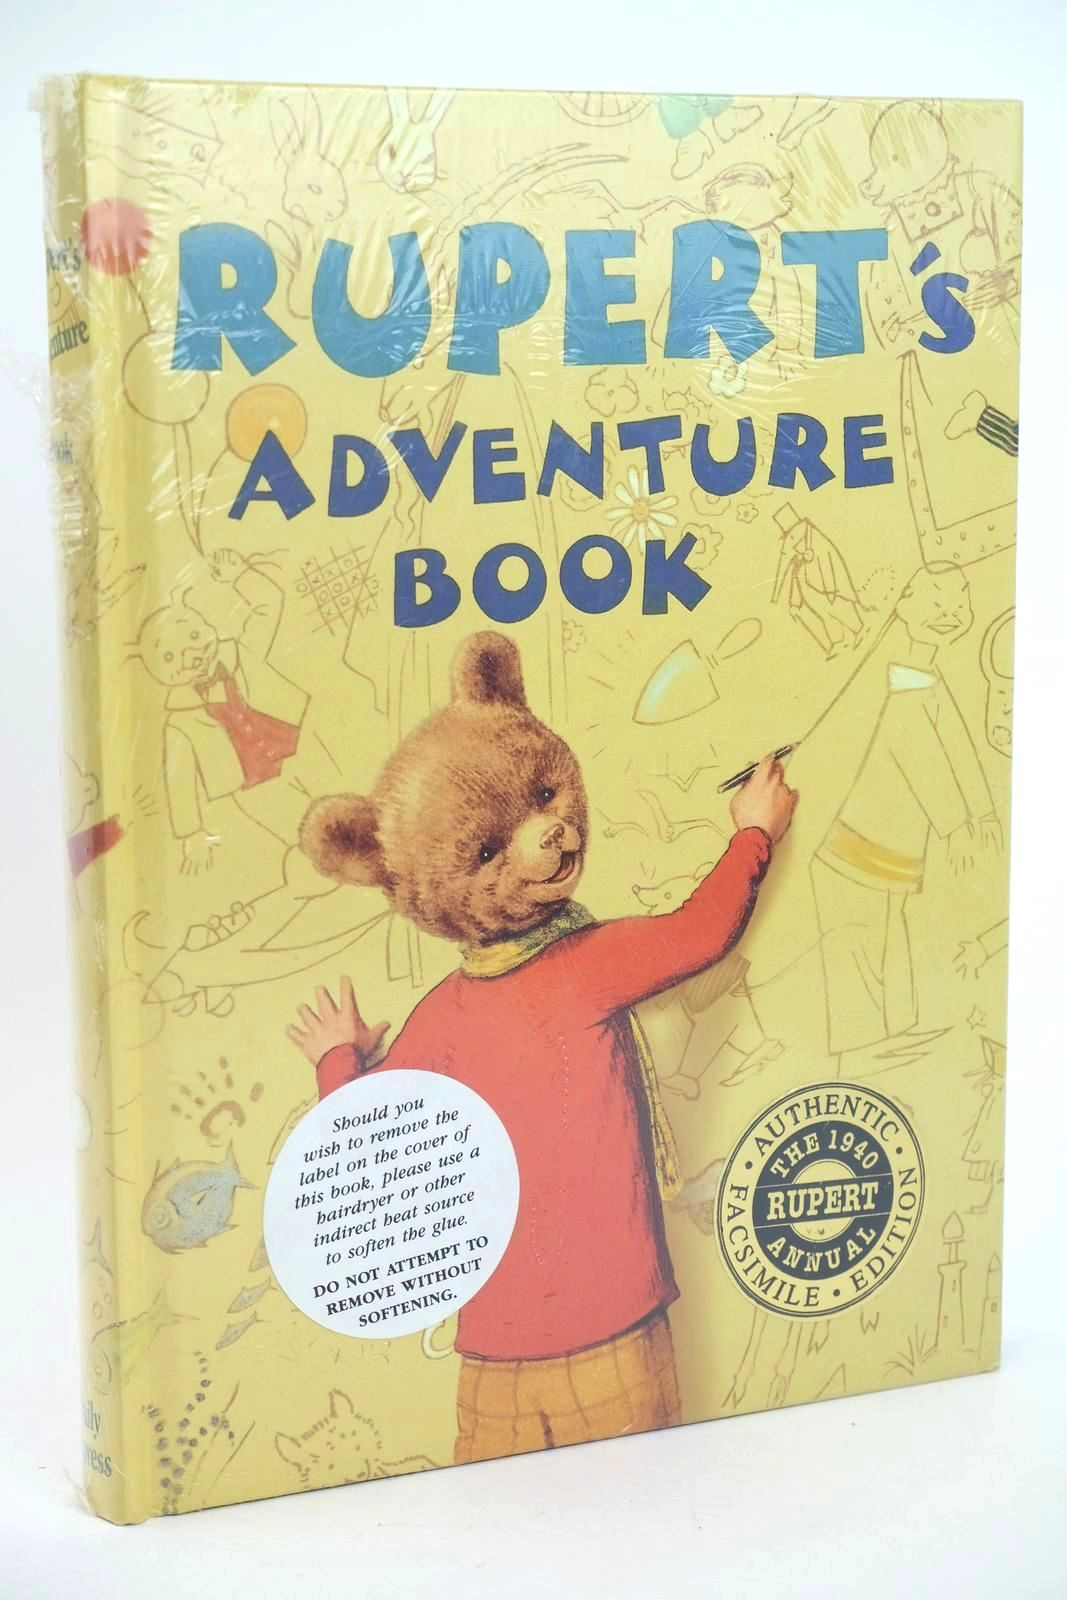 Photo of RUPERT ANNUAL 1940 (FACSIMILE) - RUPERT'S ADVENTURE BOOK written by Bestall, Alfred illustrated by Bestall, Alfred published by Annual Concepts Limited (STOCK CODE: 1318559)  for sale by Stella & Rose's Books